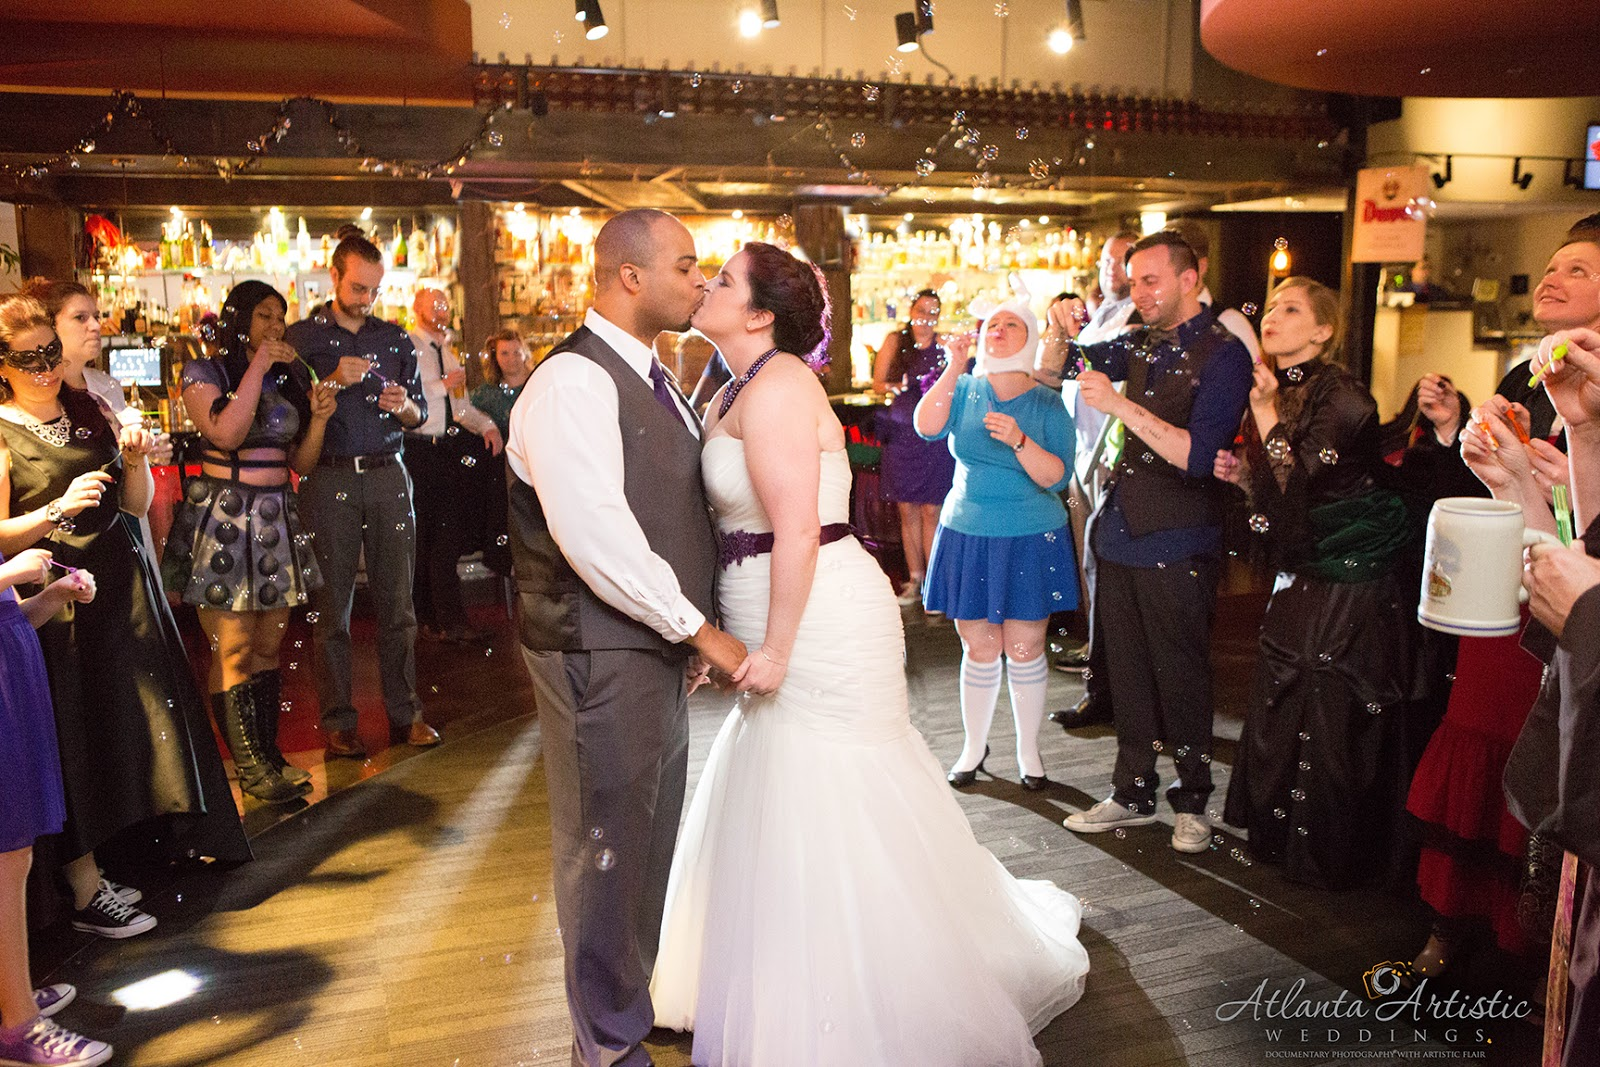 photo by the atlanta wedding photographers at atlantaartisticweddings - Halloween Themed Wedding Reception